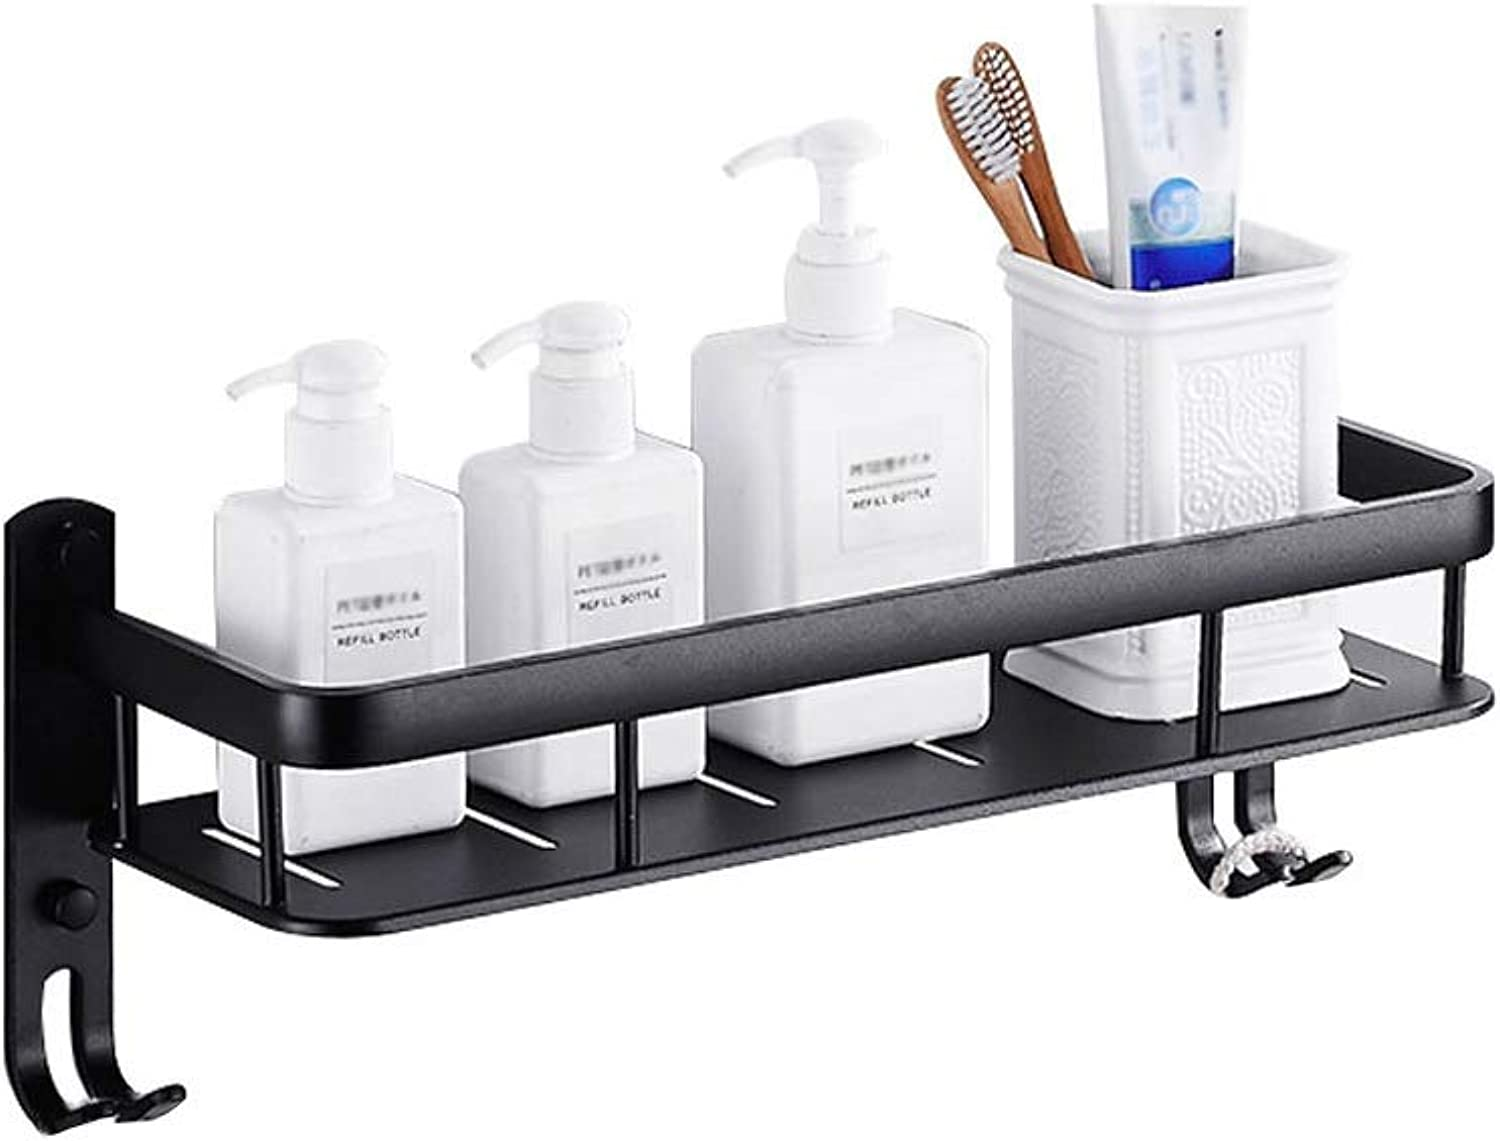 Bathroom Wall-Mounted Racks for Kitchen Or Bathroom, Condiments, Shampoo Or Bathroom Products, Space Aluminum, with Hooks, Available in A Variety of Sizes, Black (Size   40cm)